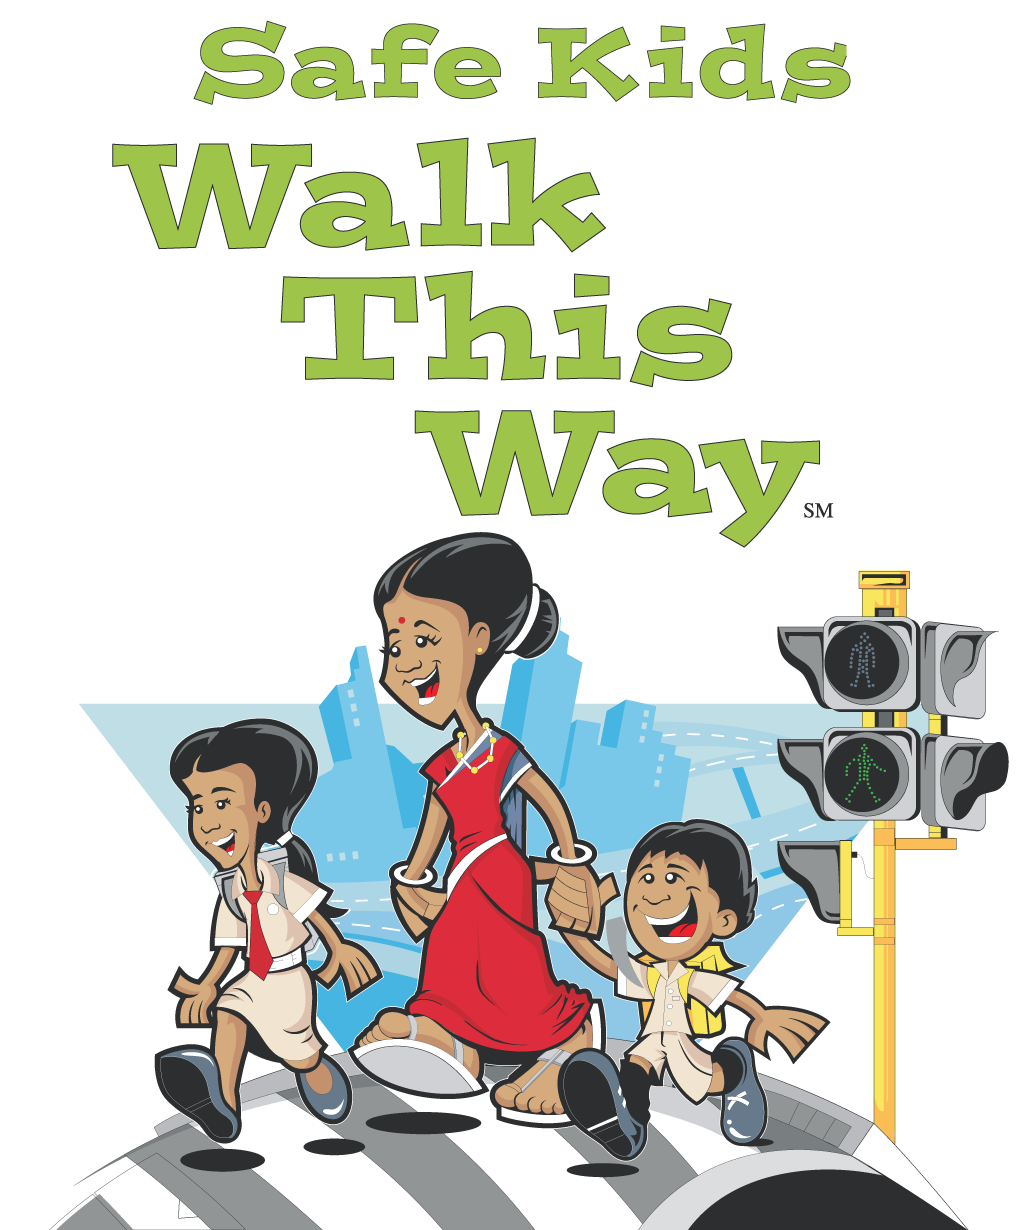 Children walking to school clipart png black and white library Safe Kids Walk This Way – Safe Kids Foundation png black and white library